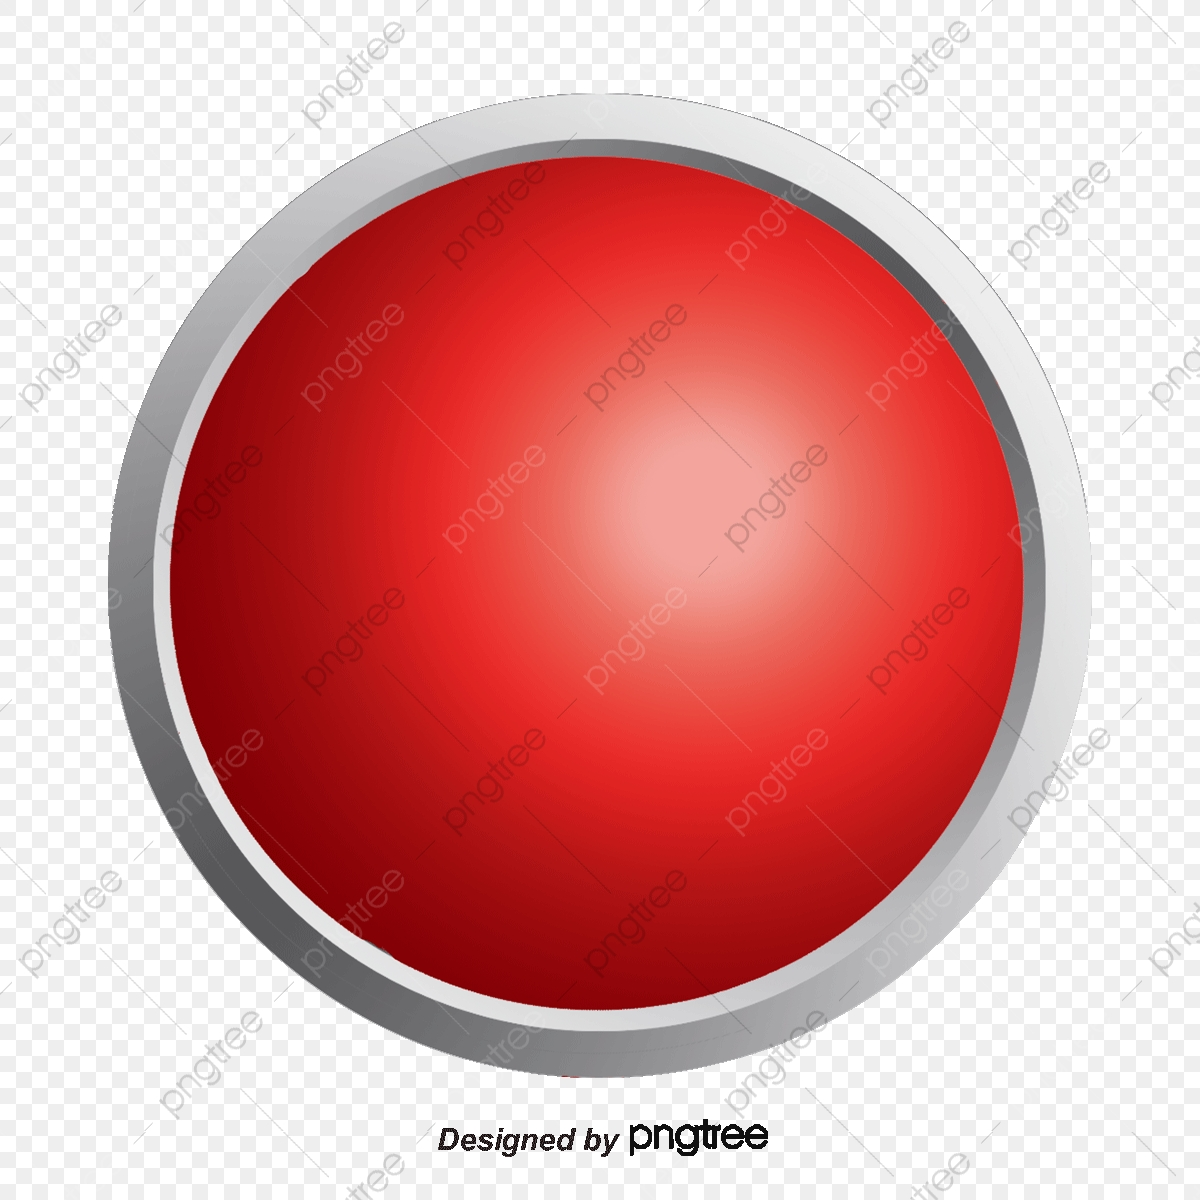 Red Button, Push Button, Hand Painted Buttons, Push PNG.